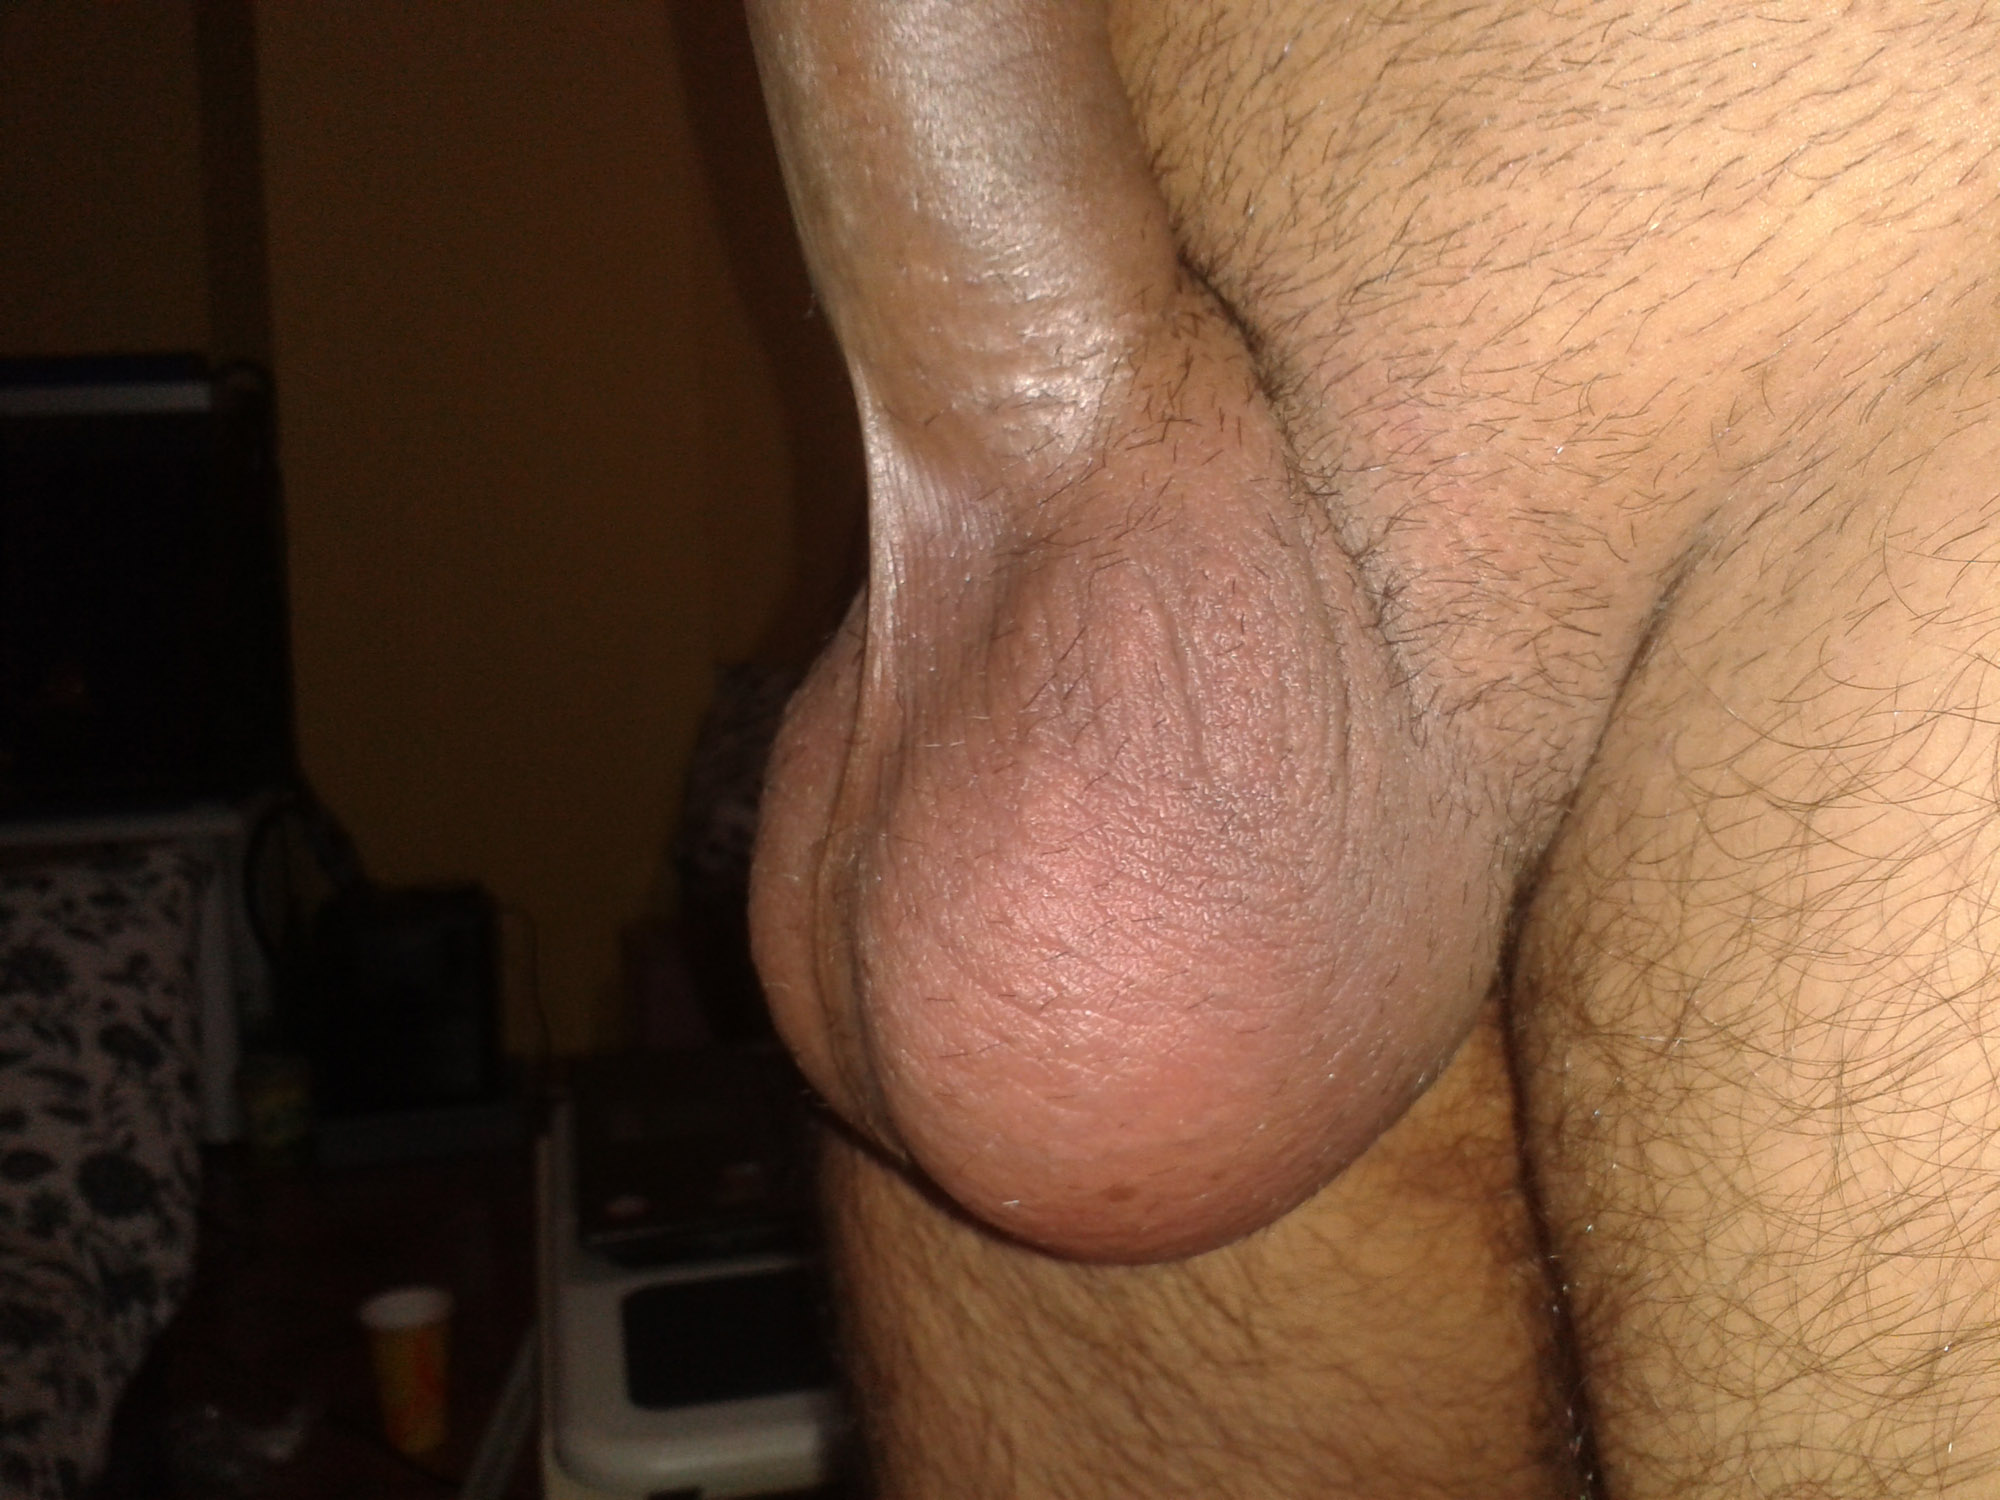 The Fuck big balls shaved question removed